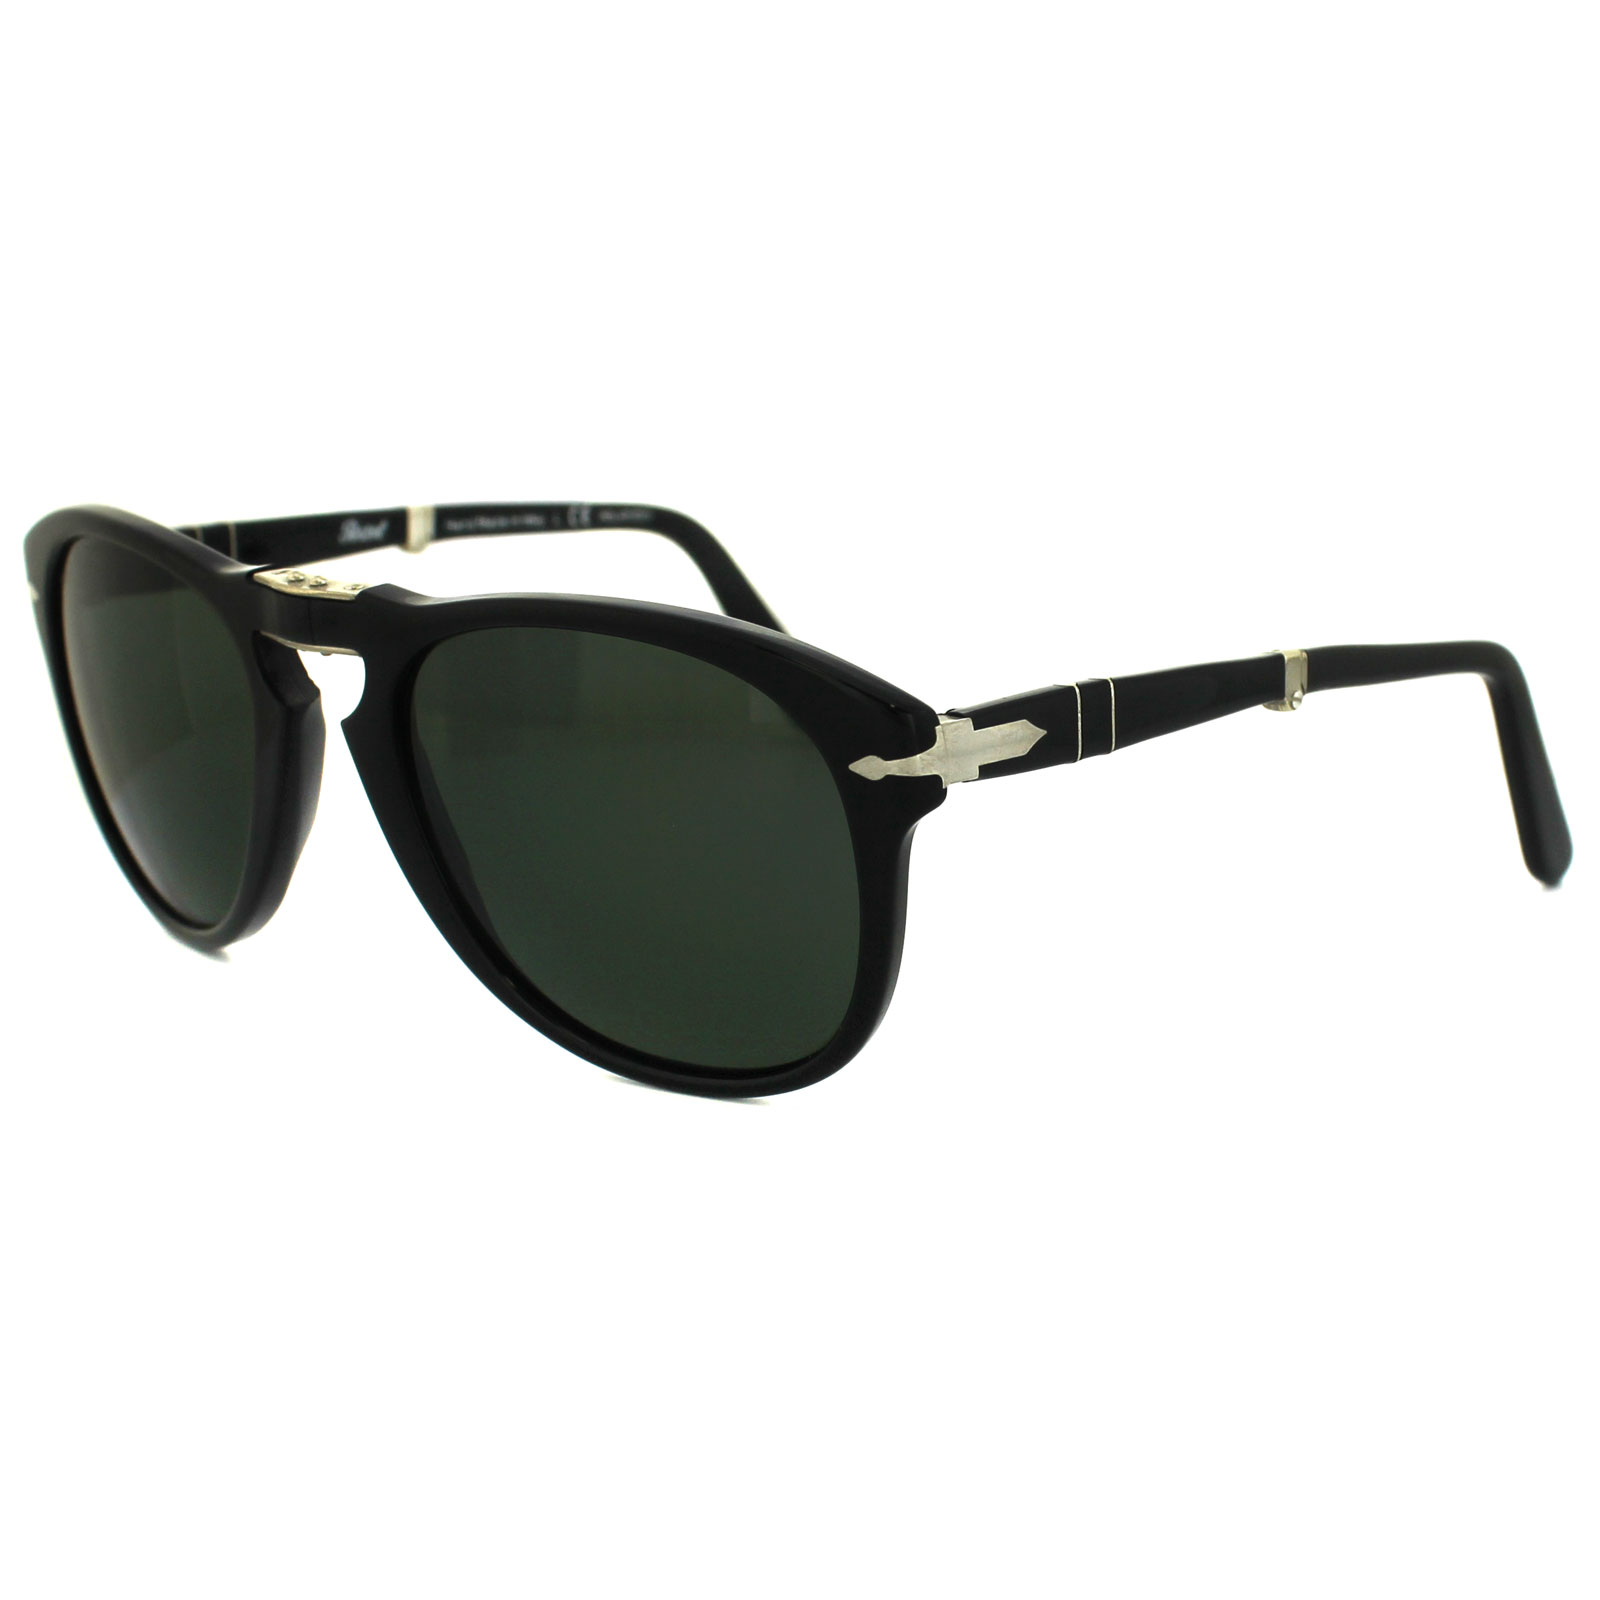 f67de228224 Sentinel Persol Sunglasses 714 95 58 Black Green Polarized Folding Steve  McQueen 54mm